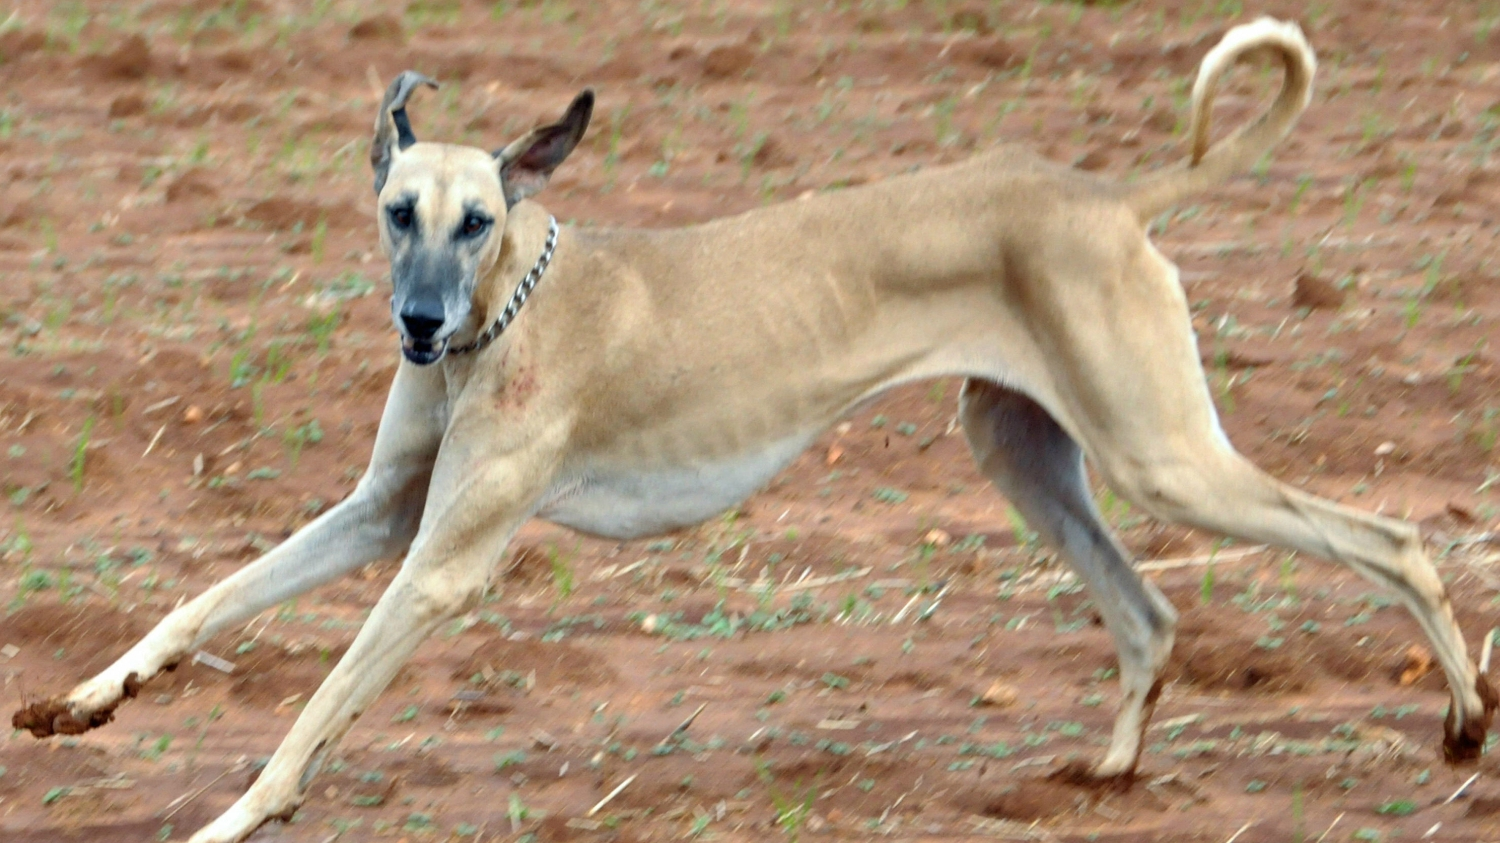 Two new dog breeds added to American Kennel Club roster